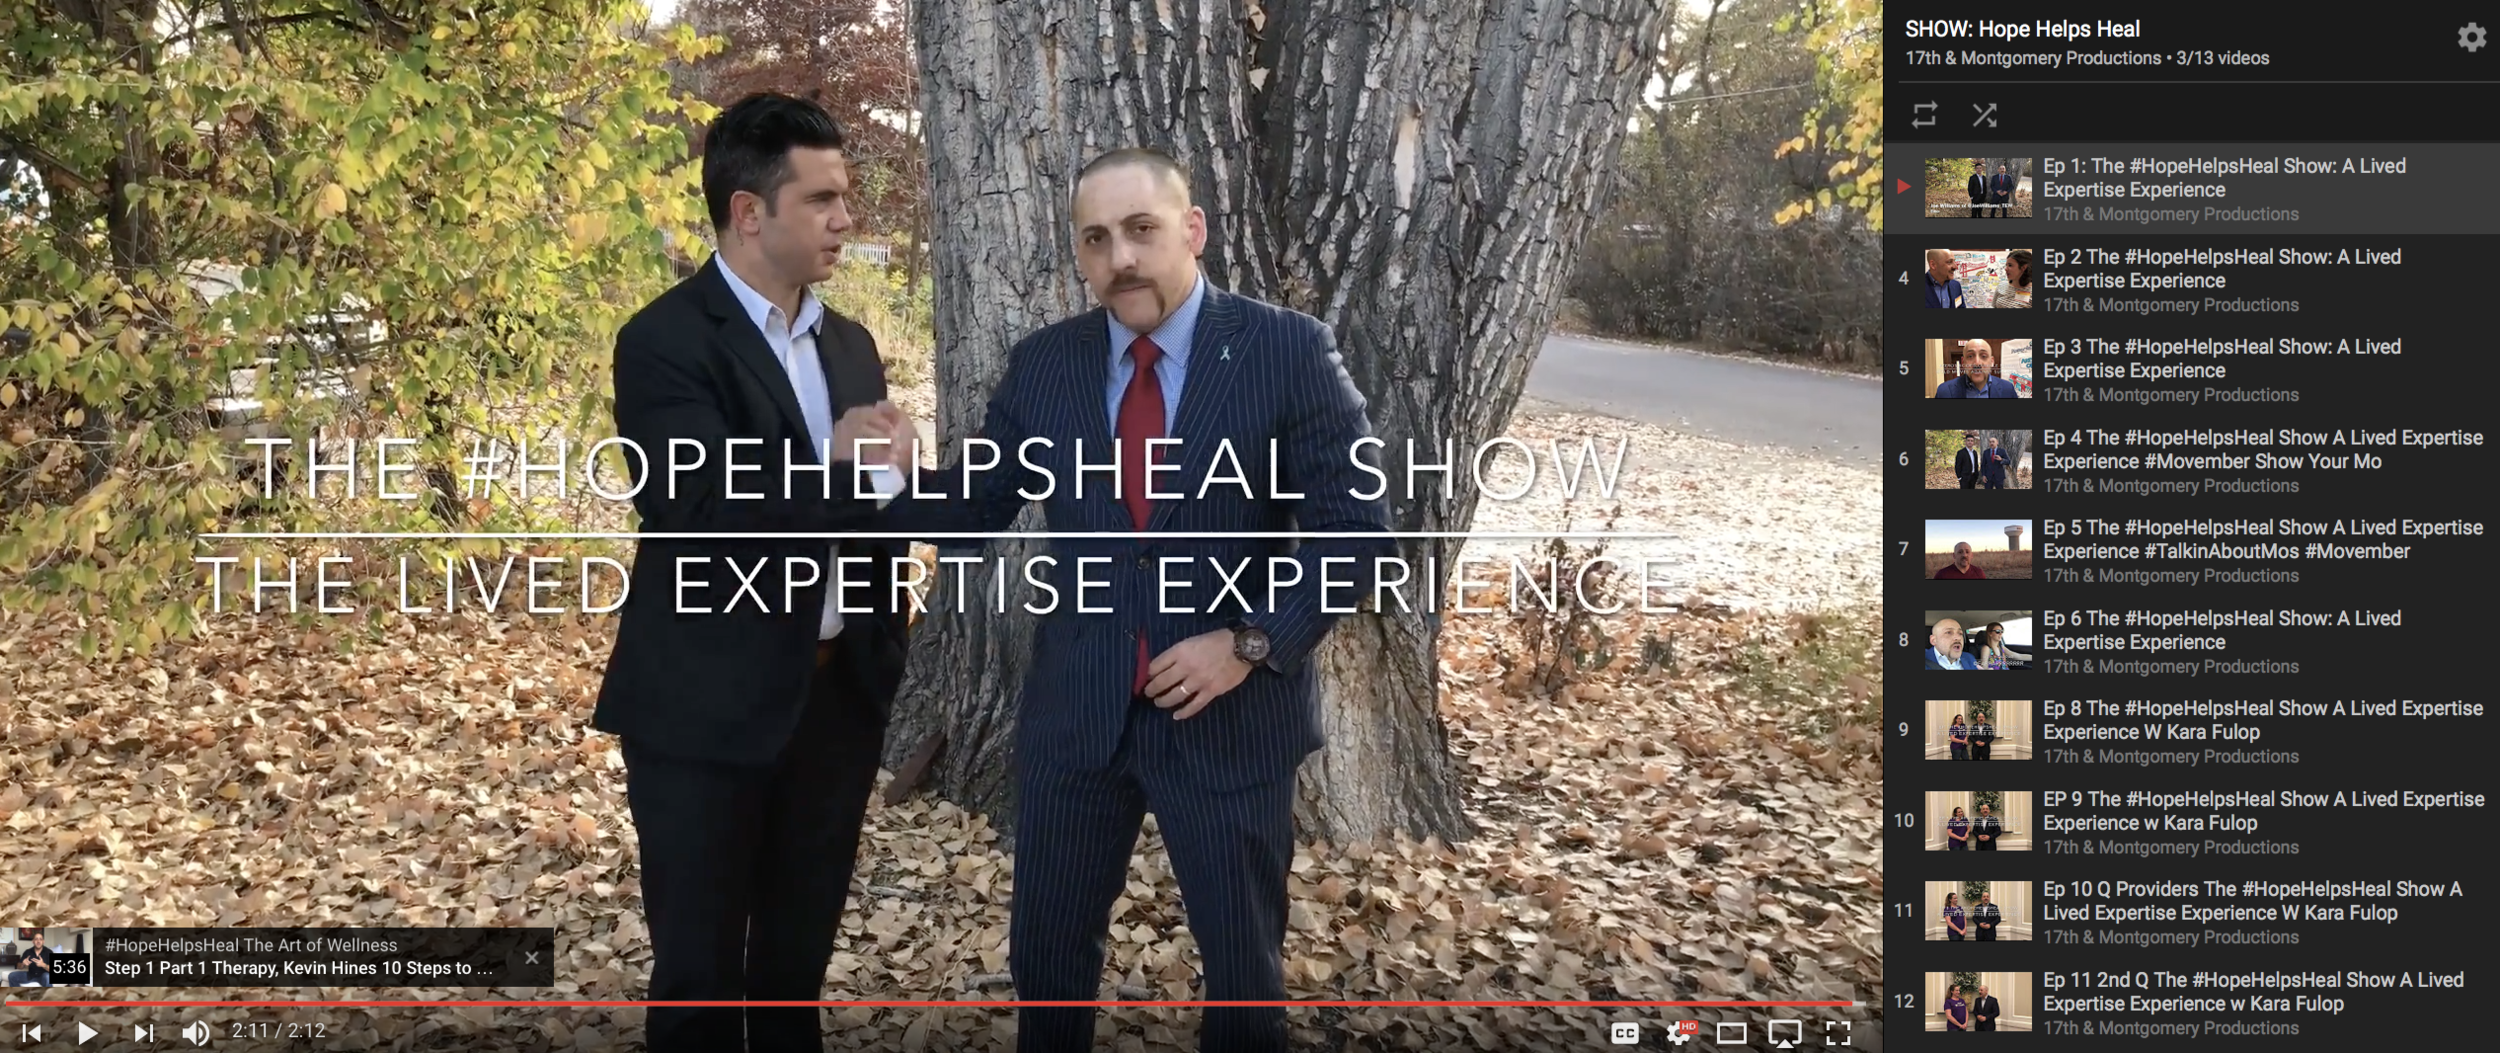 #HOPEHELPSHEAL   The #HopeHelpsHeal Show A Lived Expertise Experience. Join Kevin and a group of inspiring advocates as they talk all things mental wellness and suicide prevention.